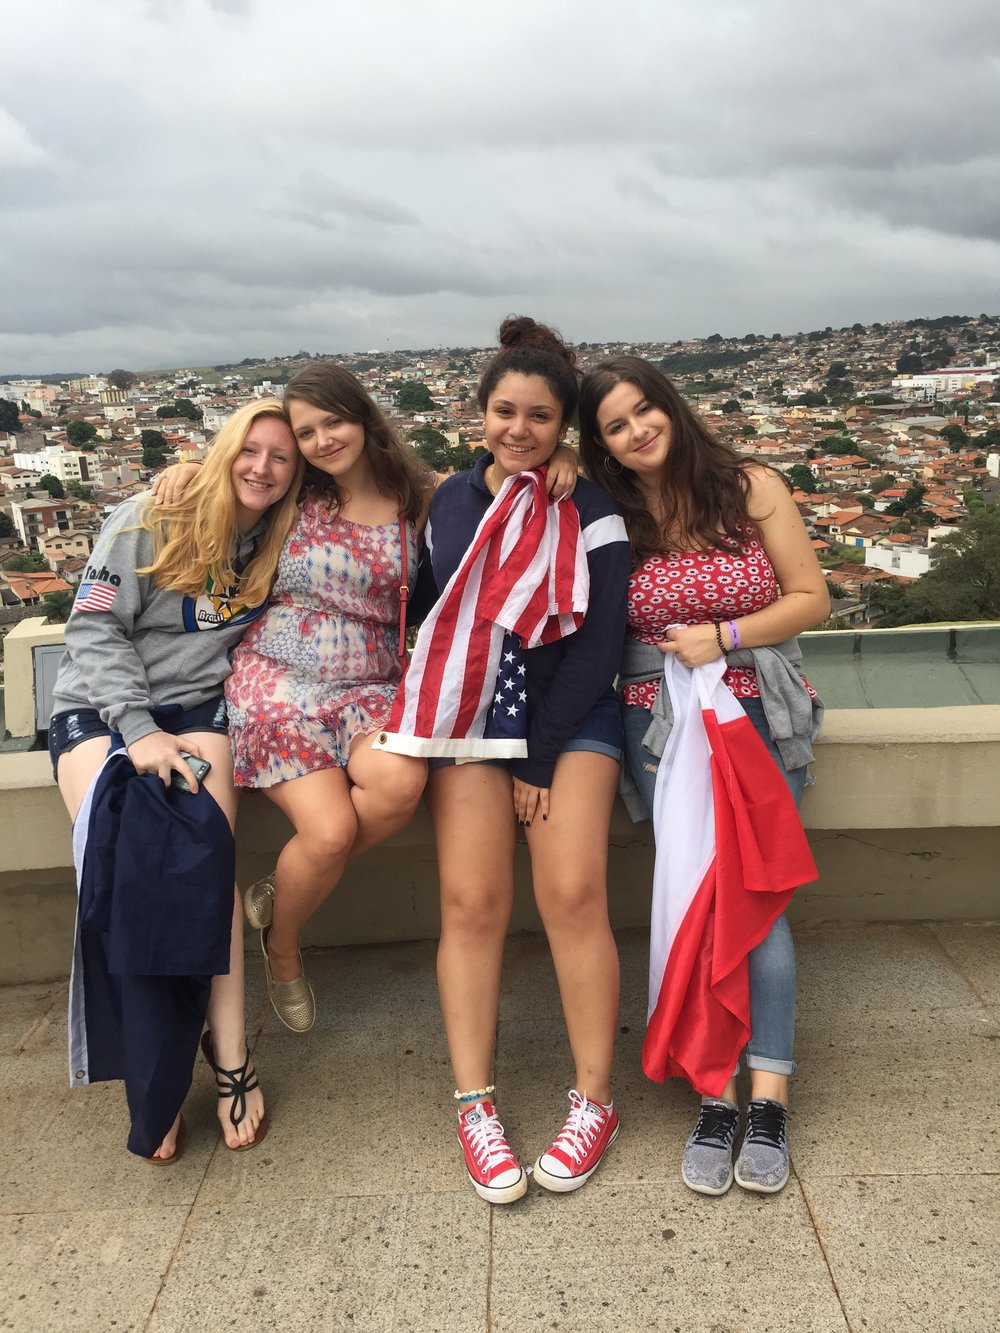 Alyssa, Tennessee, (I'll miss her southern accent), Greta, Mexico, and Aleksandra, Poland